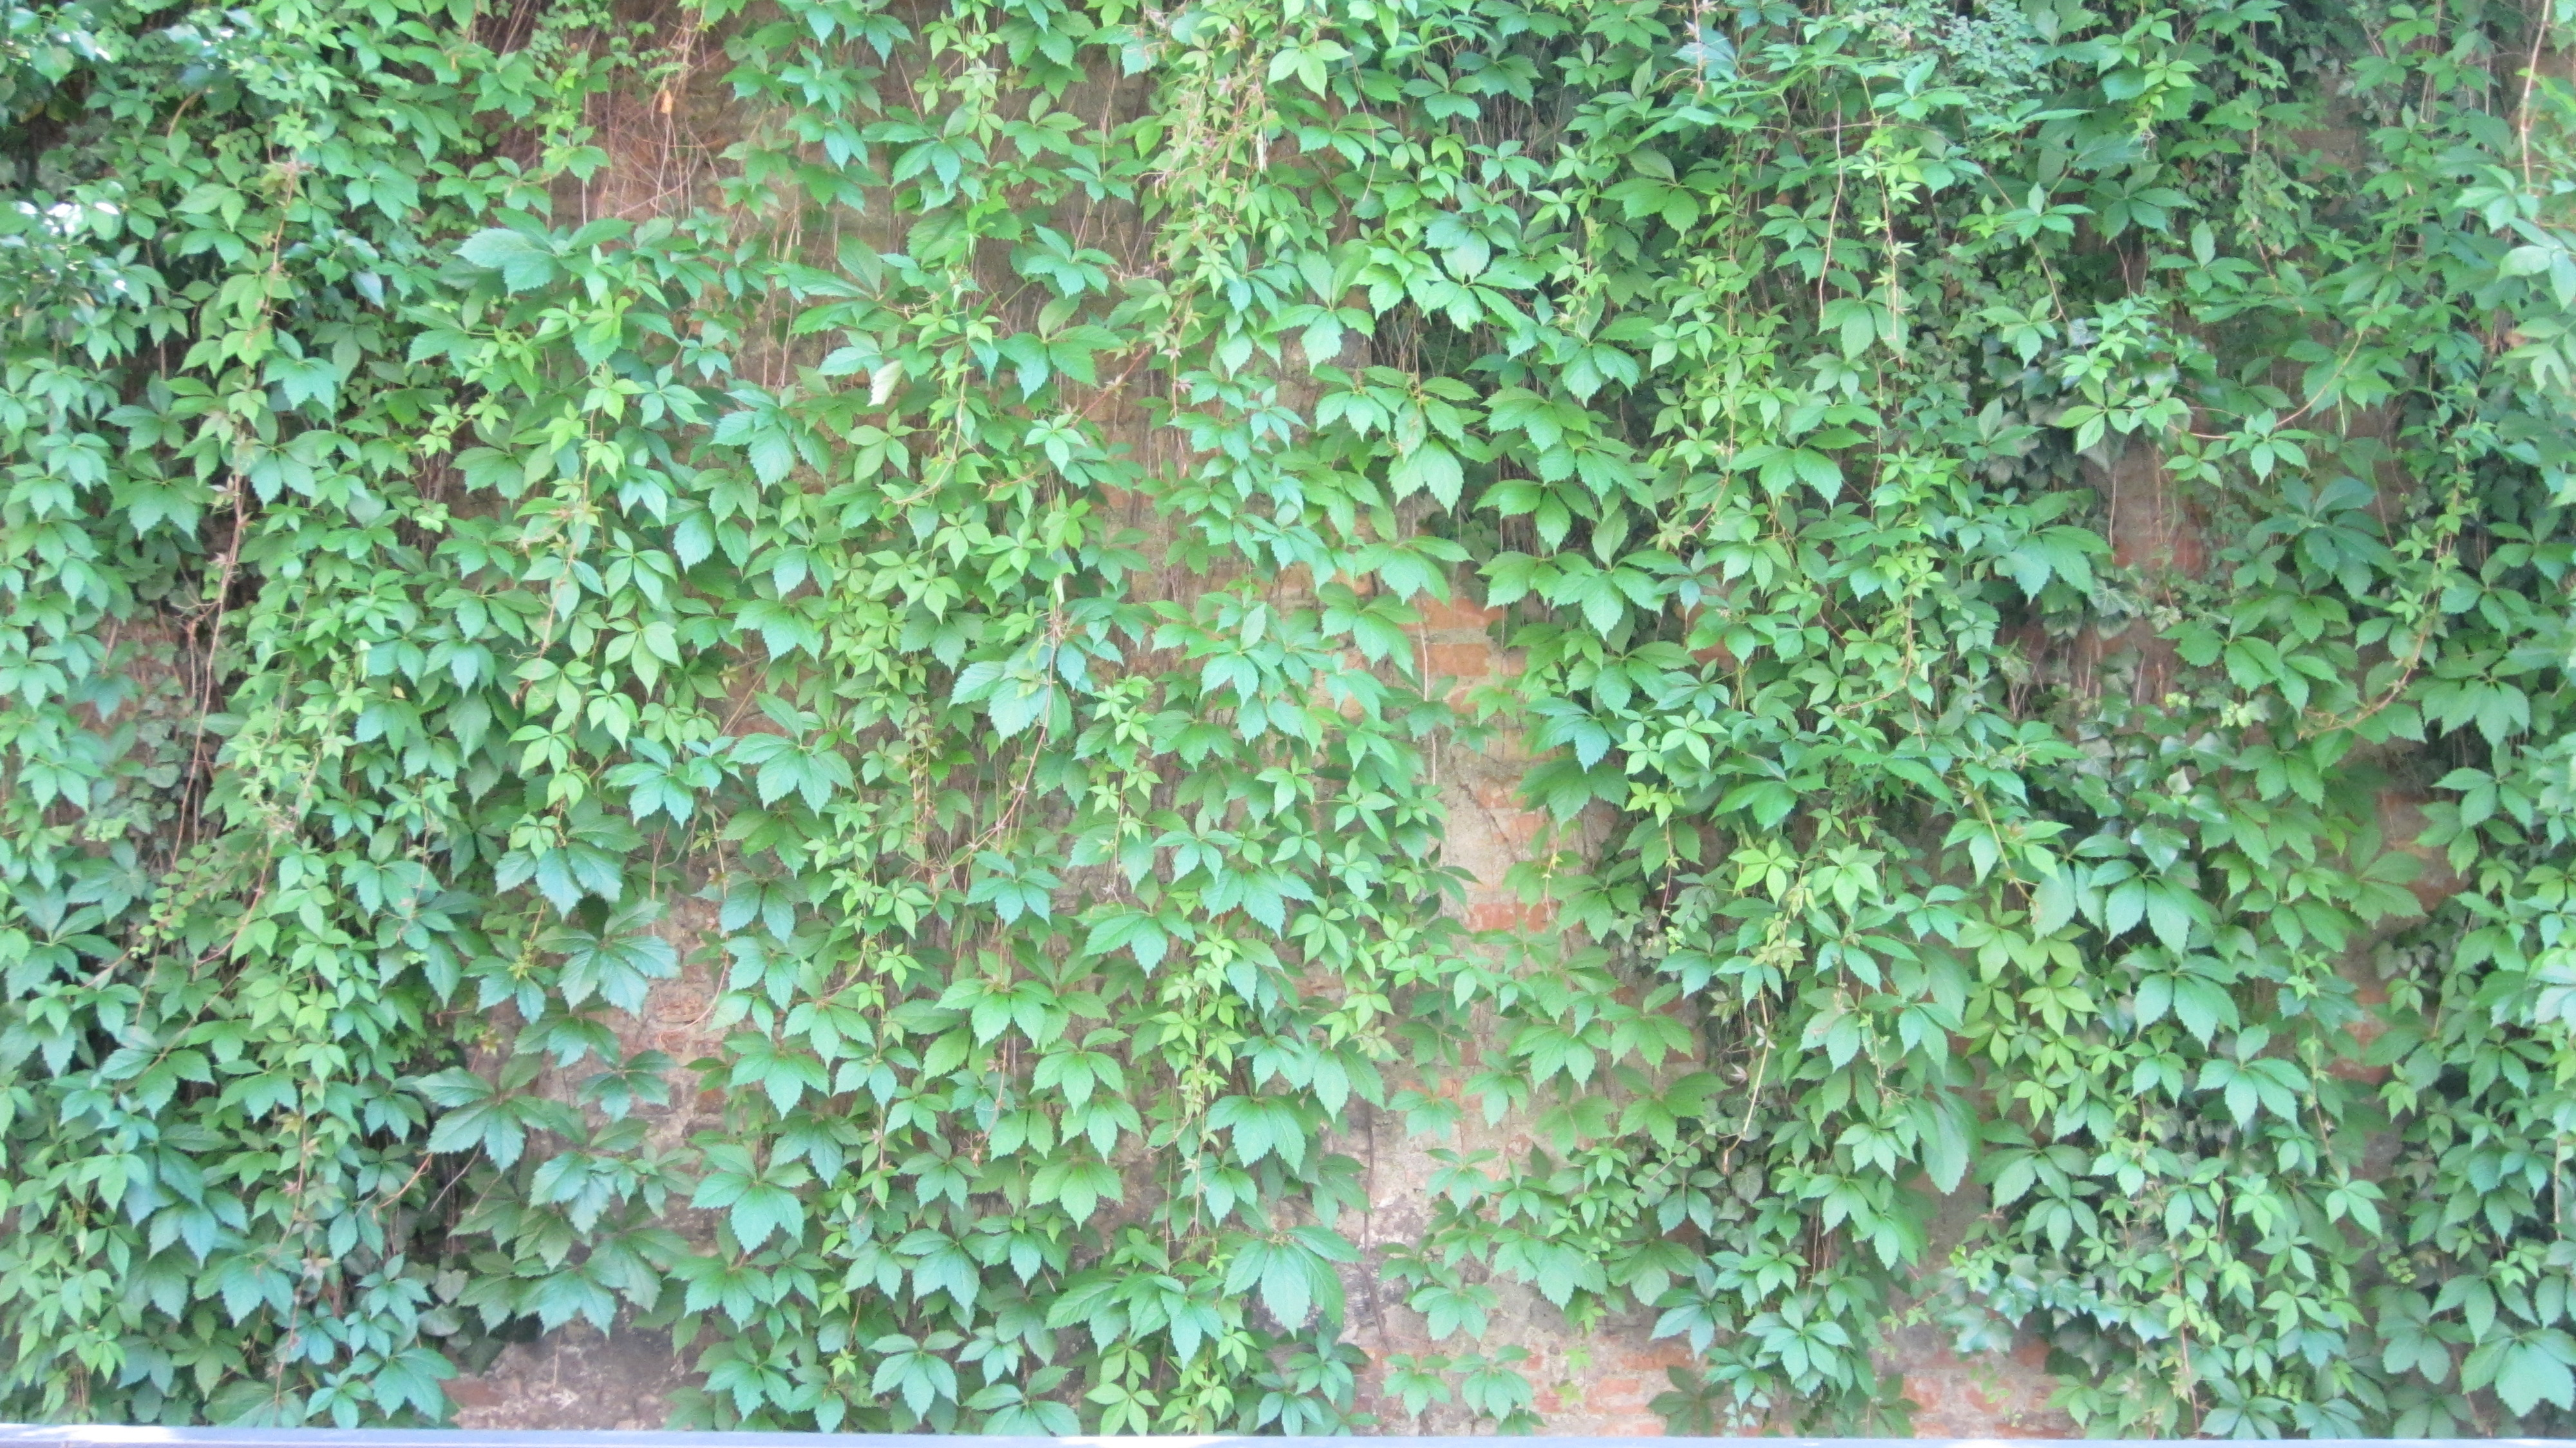 Texture of a wall with leaves | CC-Content